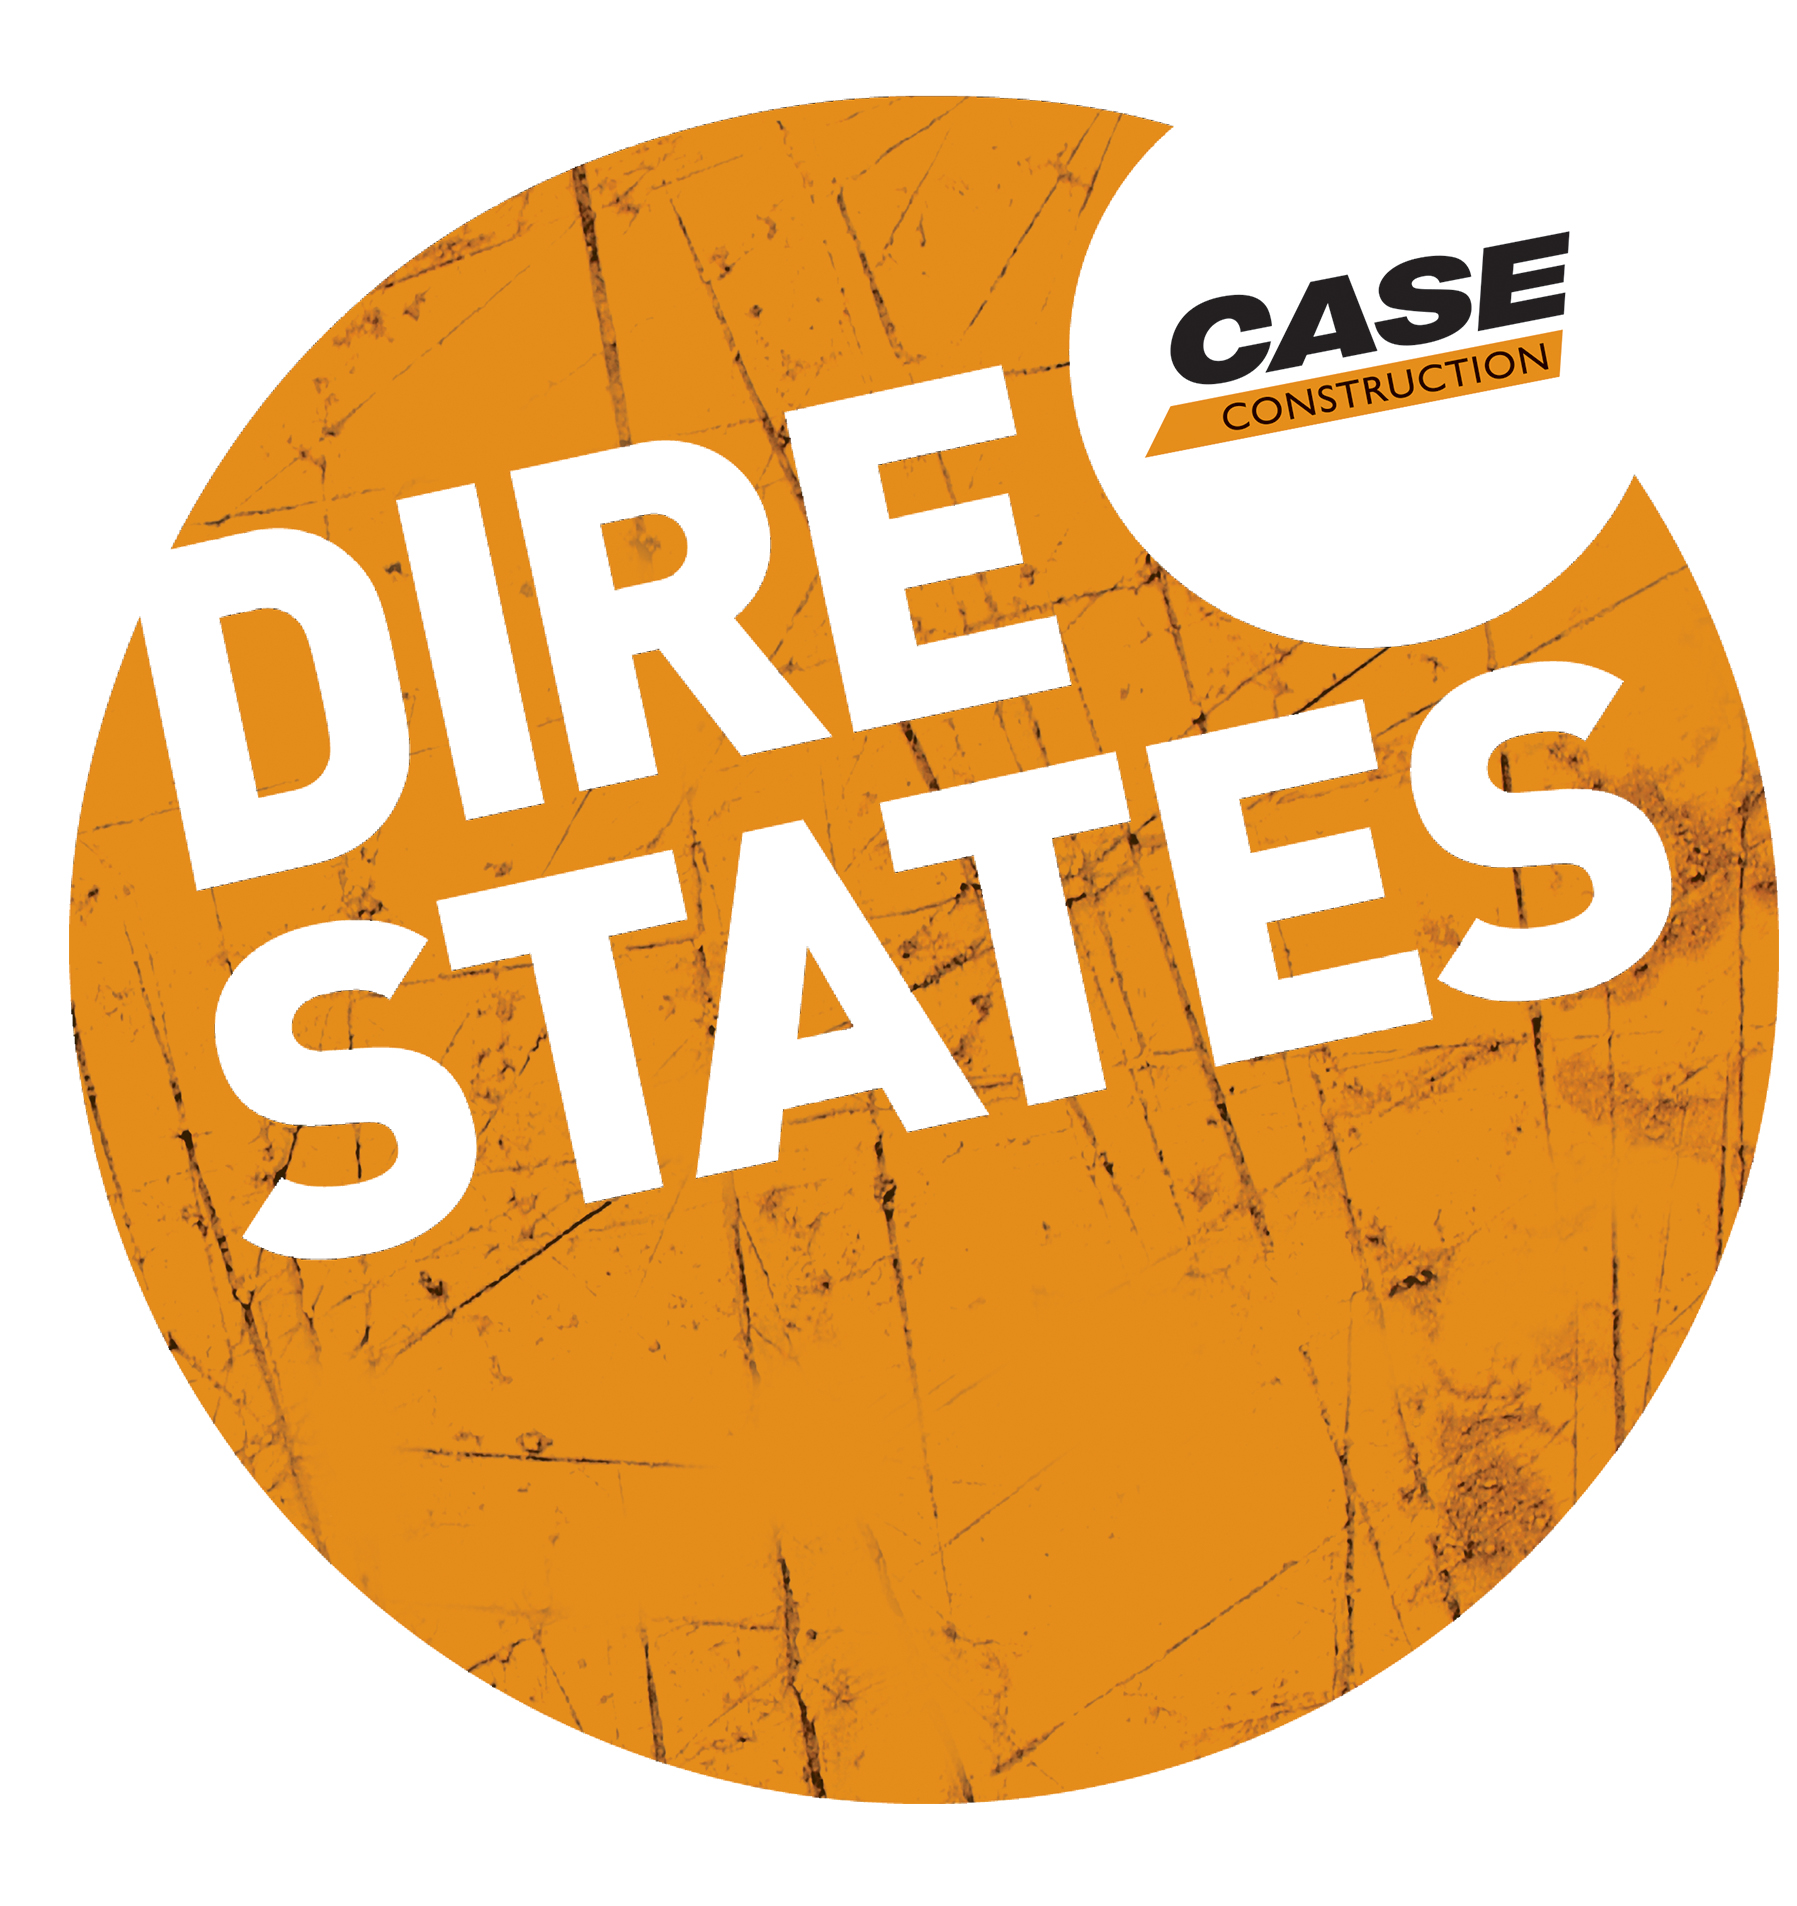 CASE Construction Equipment has announced Clay County, West Virginia as the winner of the 2021 Dire States Grant.